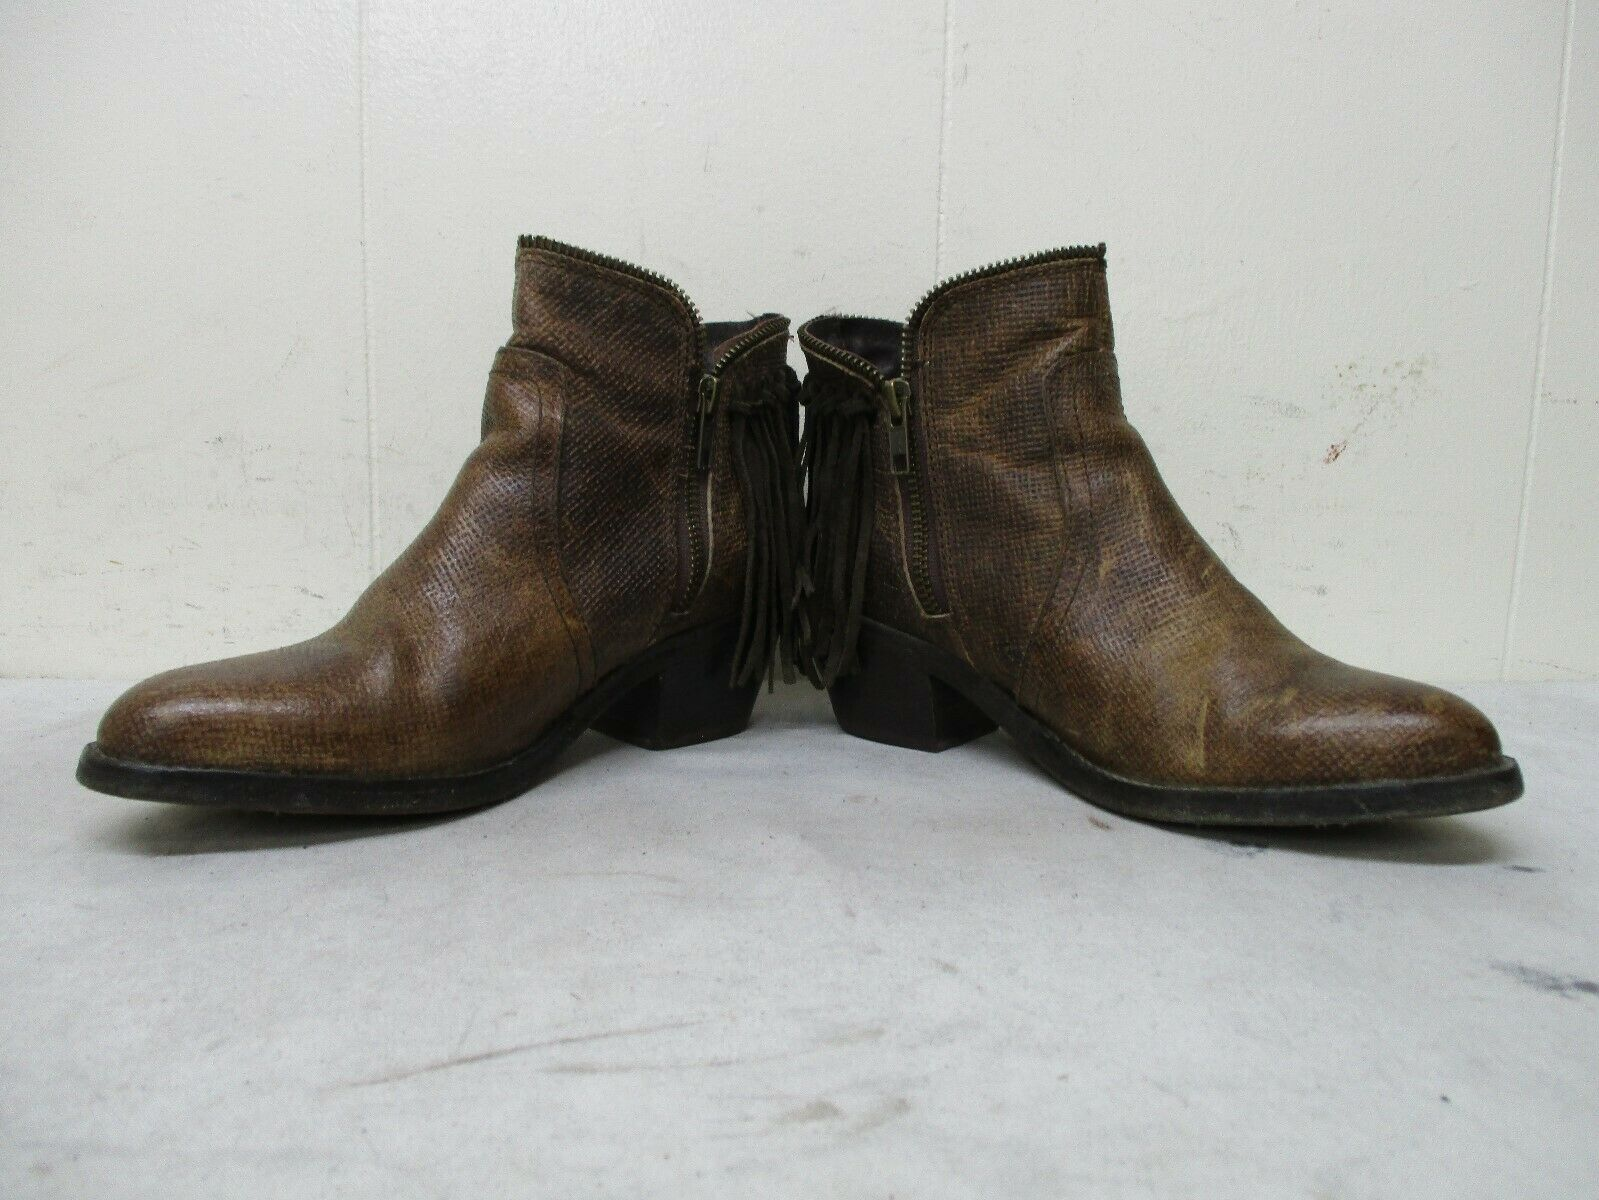 Circle G Distressed Brown Leather Zip Fringe Ankle Ankle Ankle Cowboy Boots Sz 6 M Sty P5121 828622